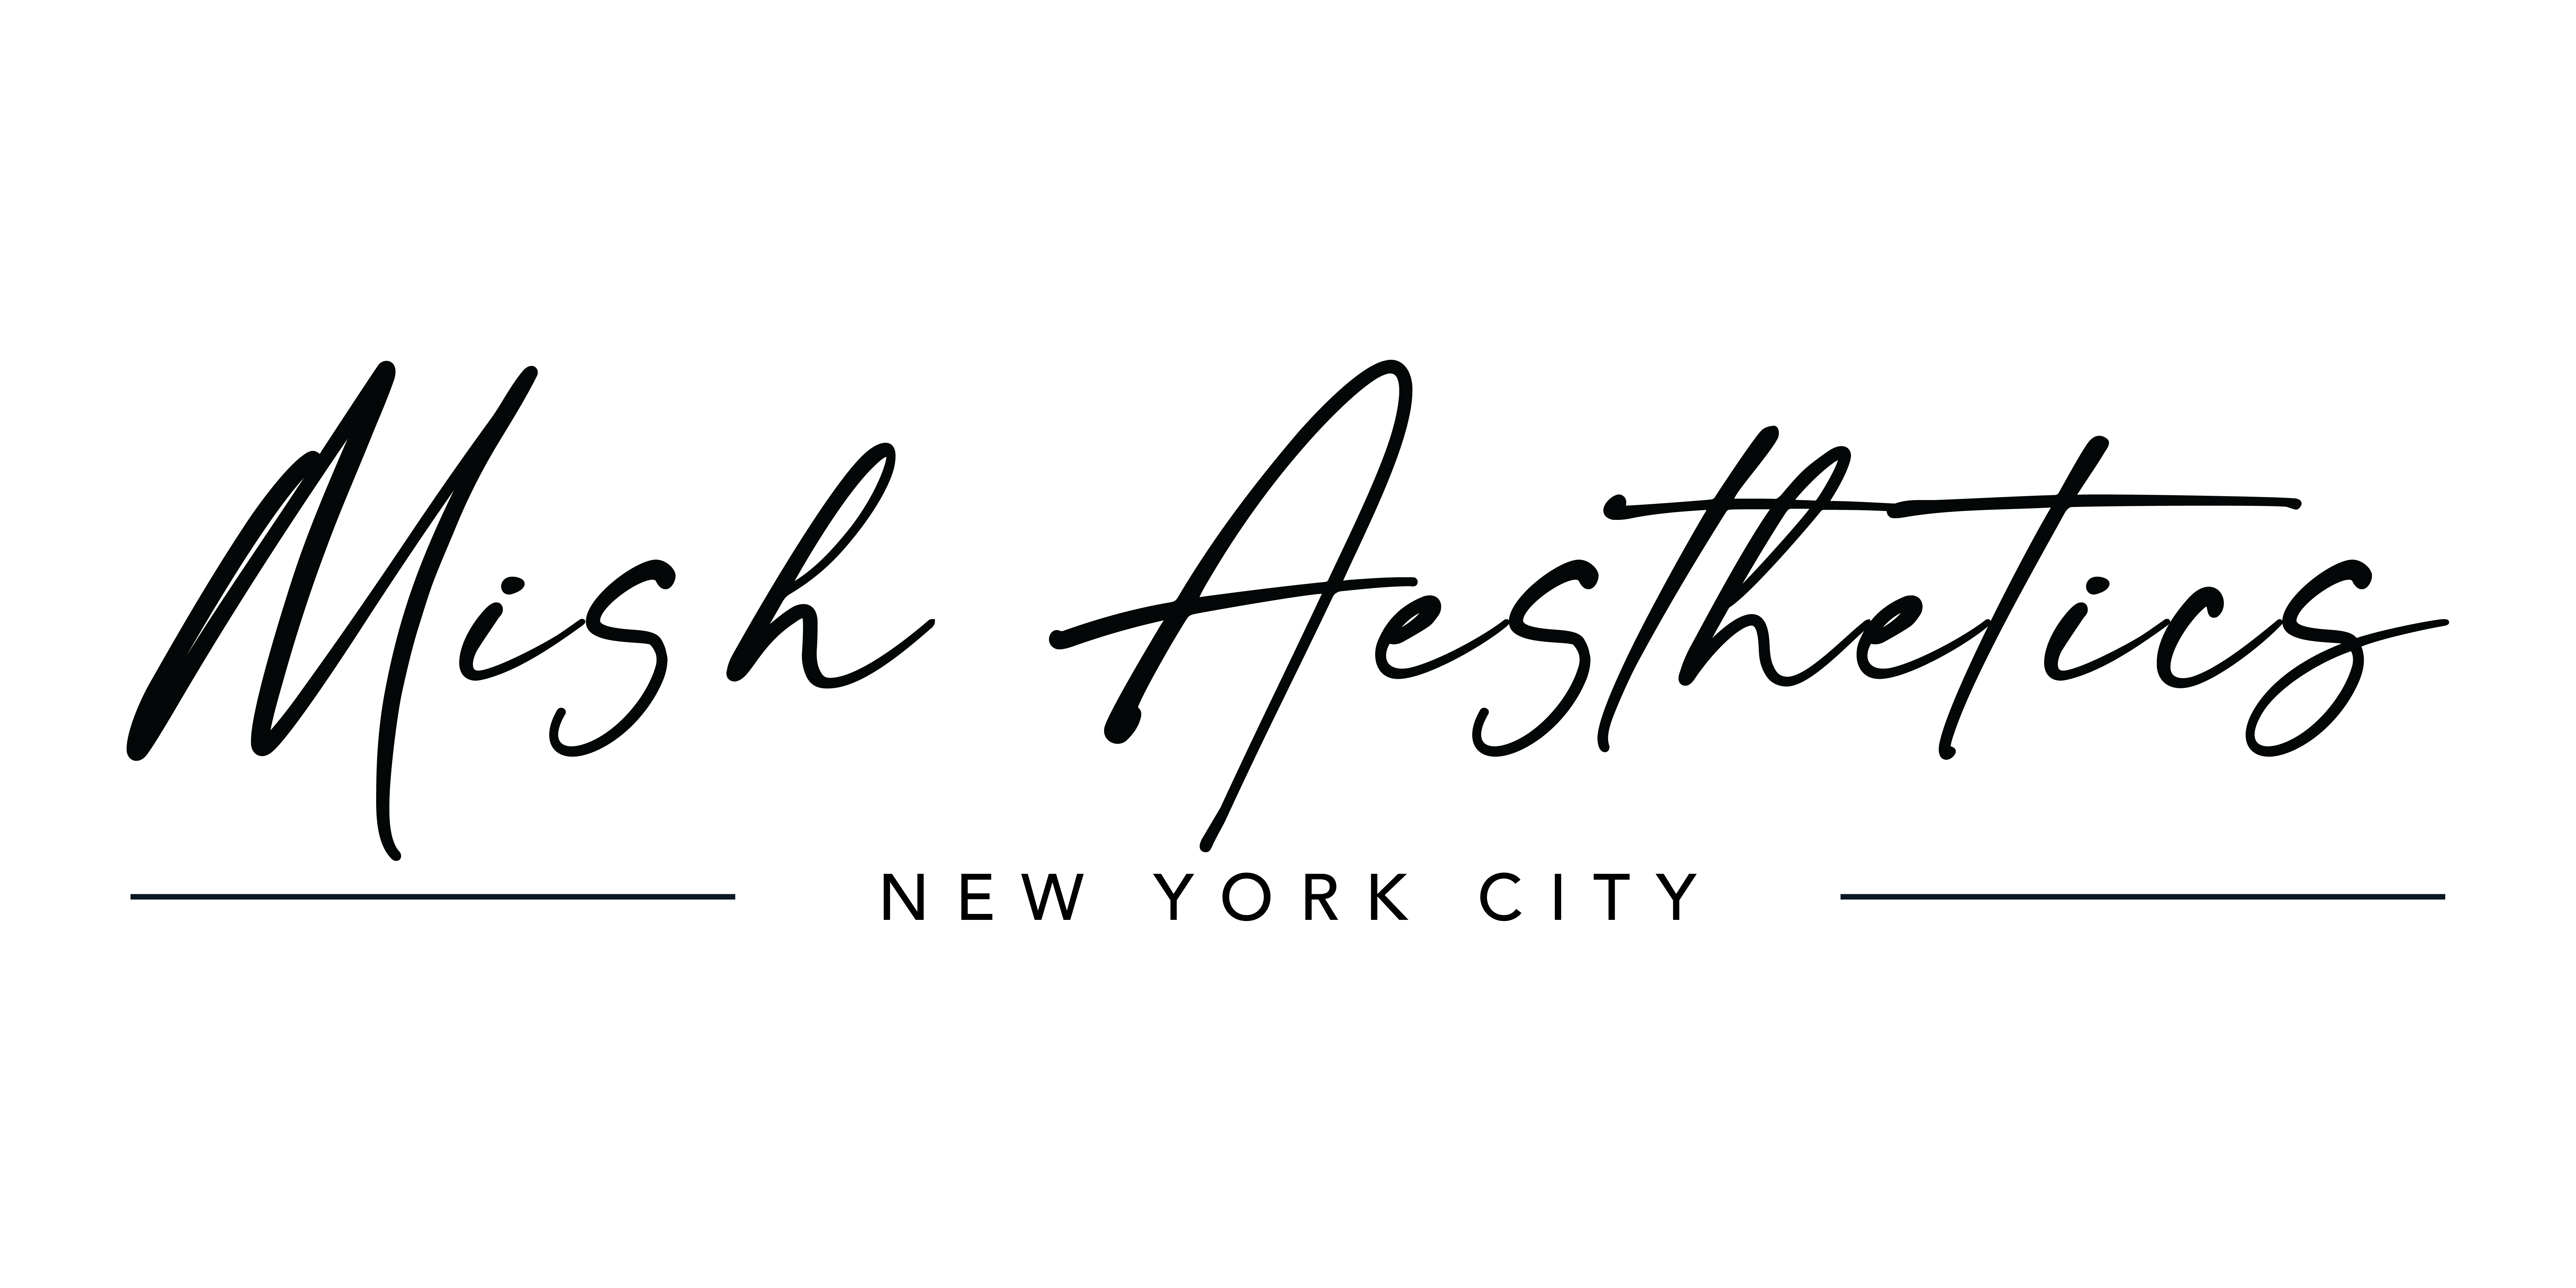 Mish Aesthetics Provides Professional Microblading, Permanent Makeup and Training Services in New York